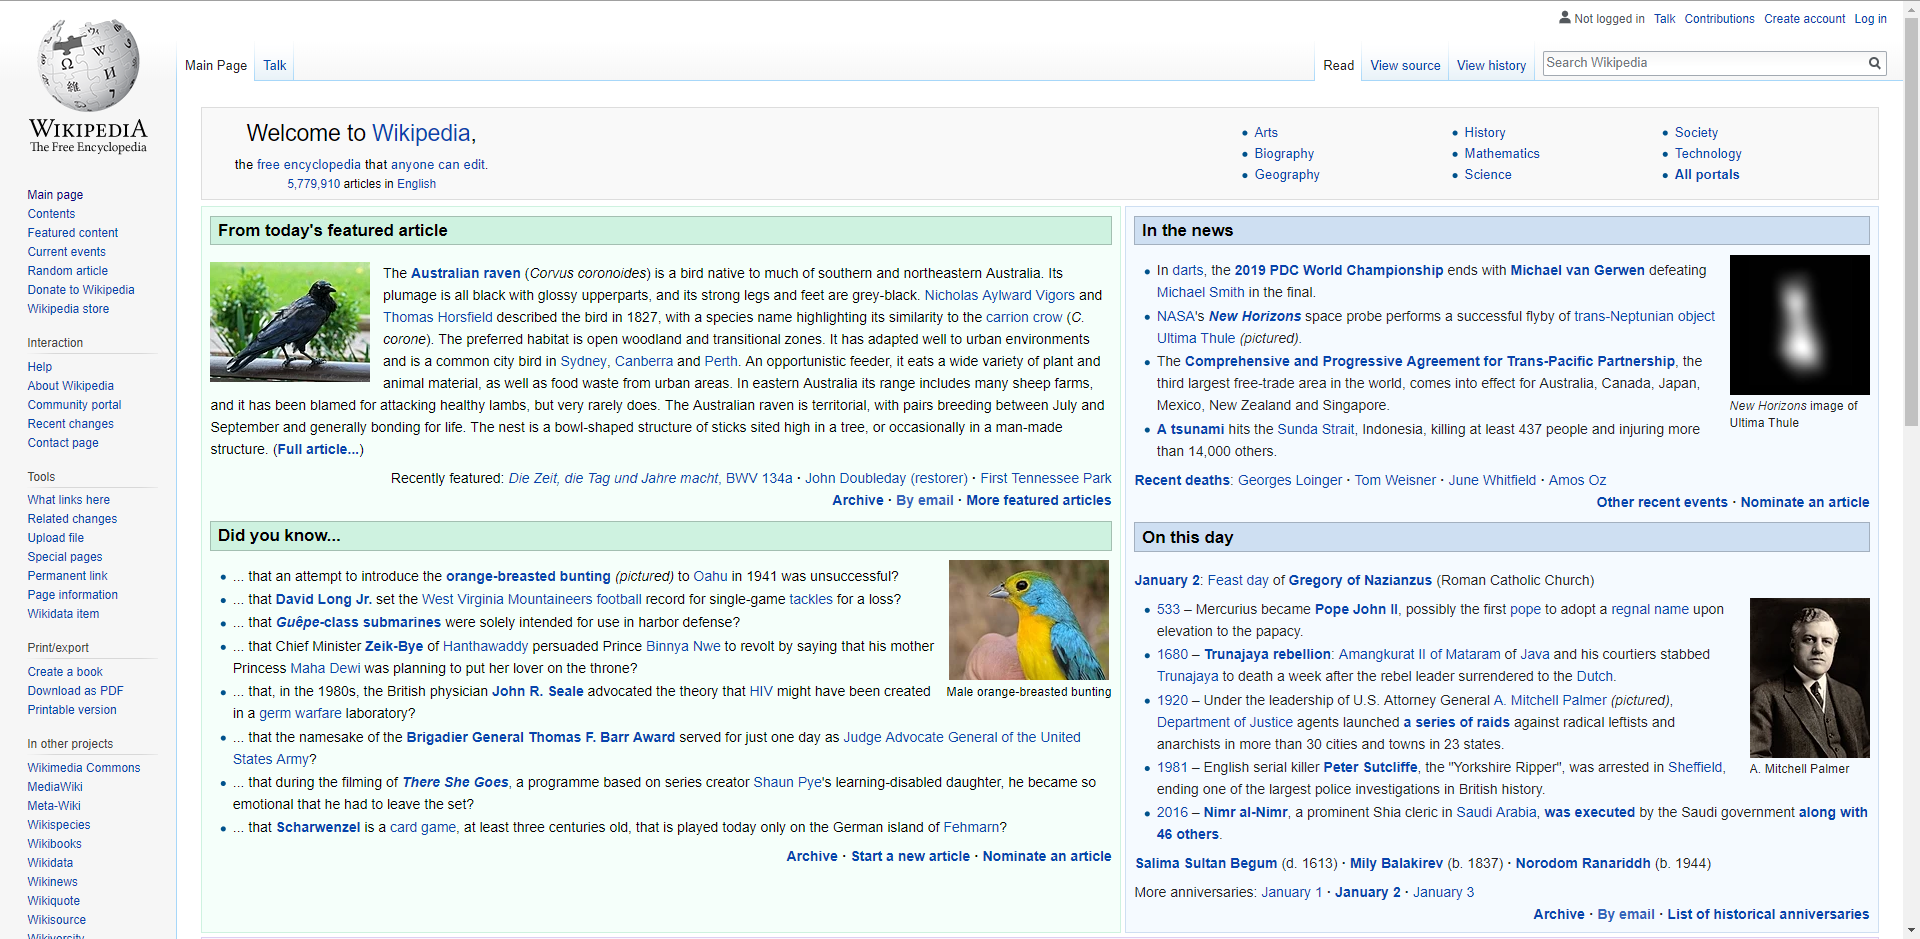 View topic - What's going on with the wiki main page lately